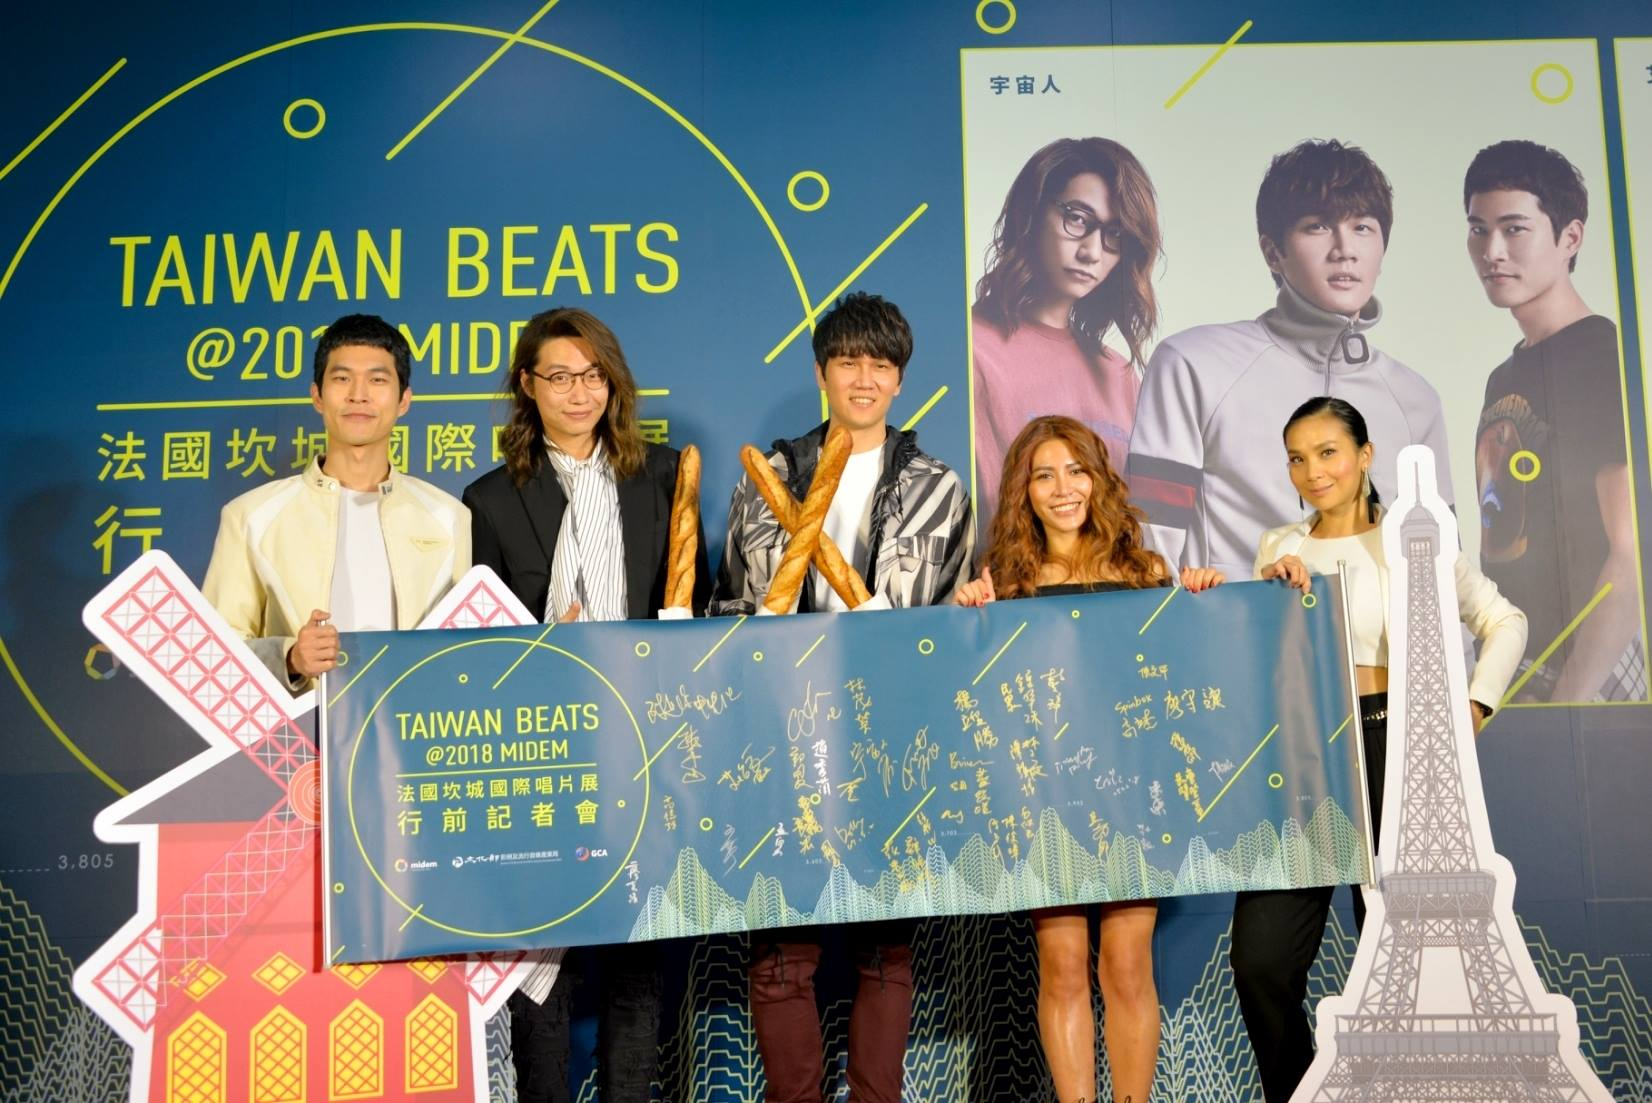 Taiwanese artists gear up for Midem beach showcase